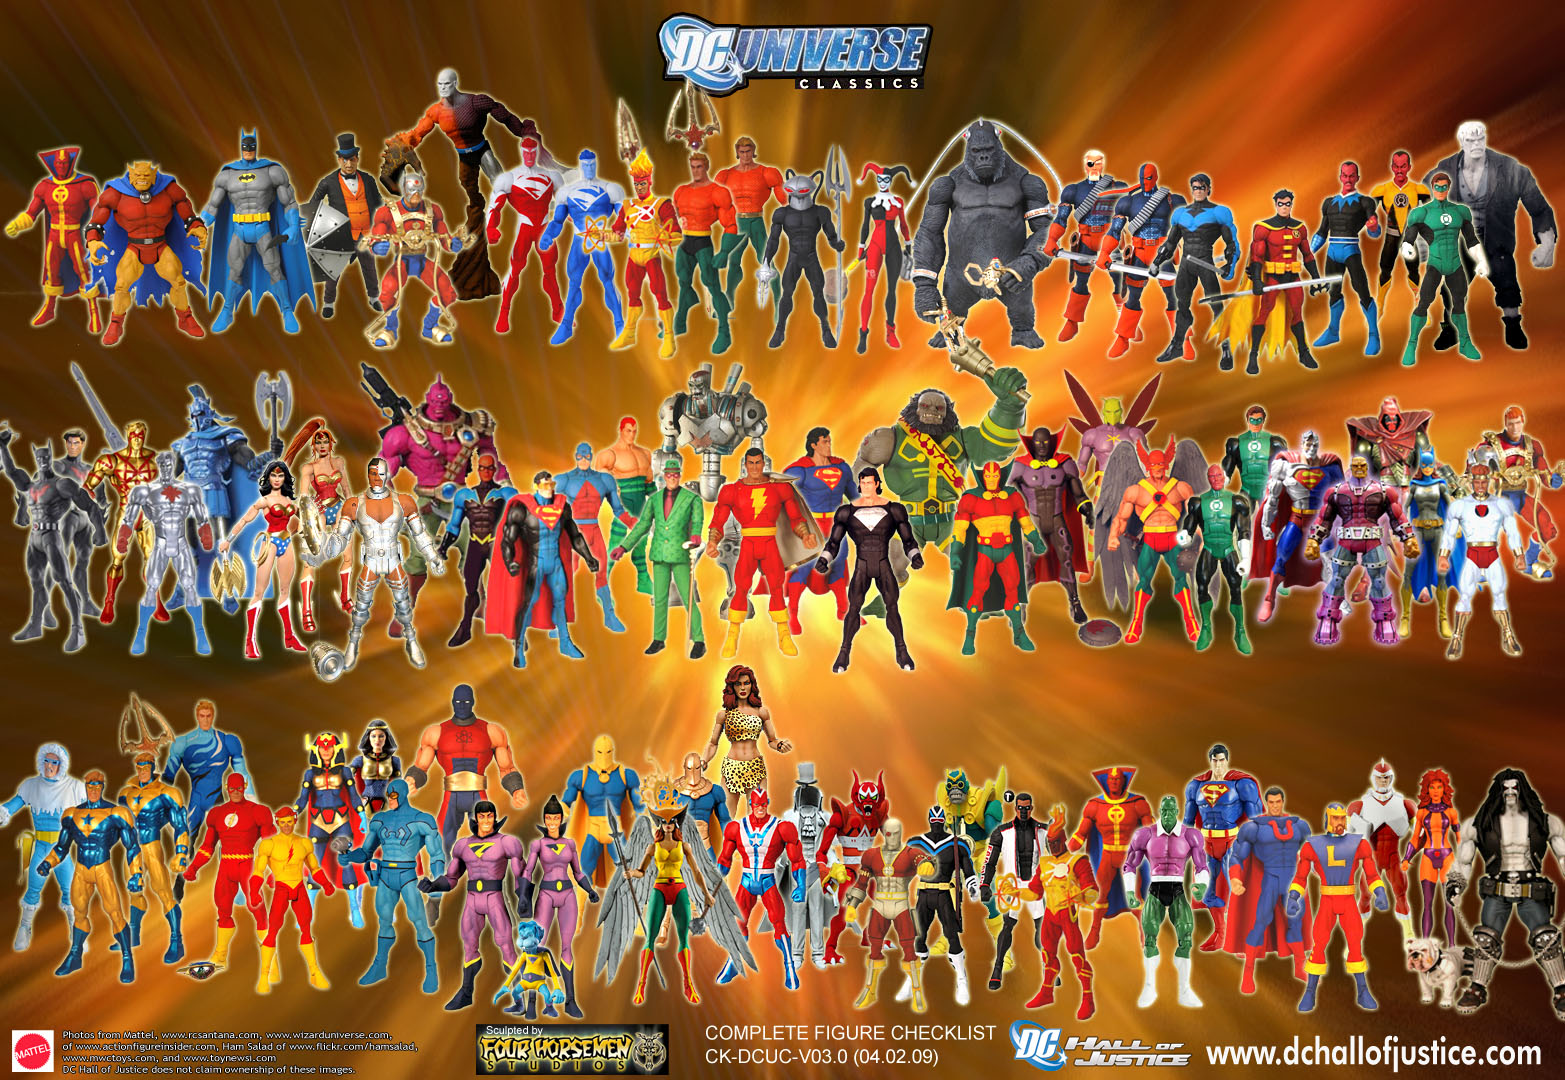 Fall Of Grayskull Wallpaper Fully Jointed Play Figures May 2012